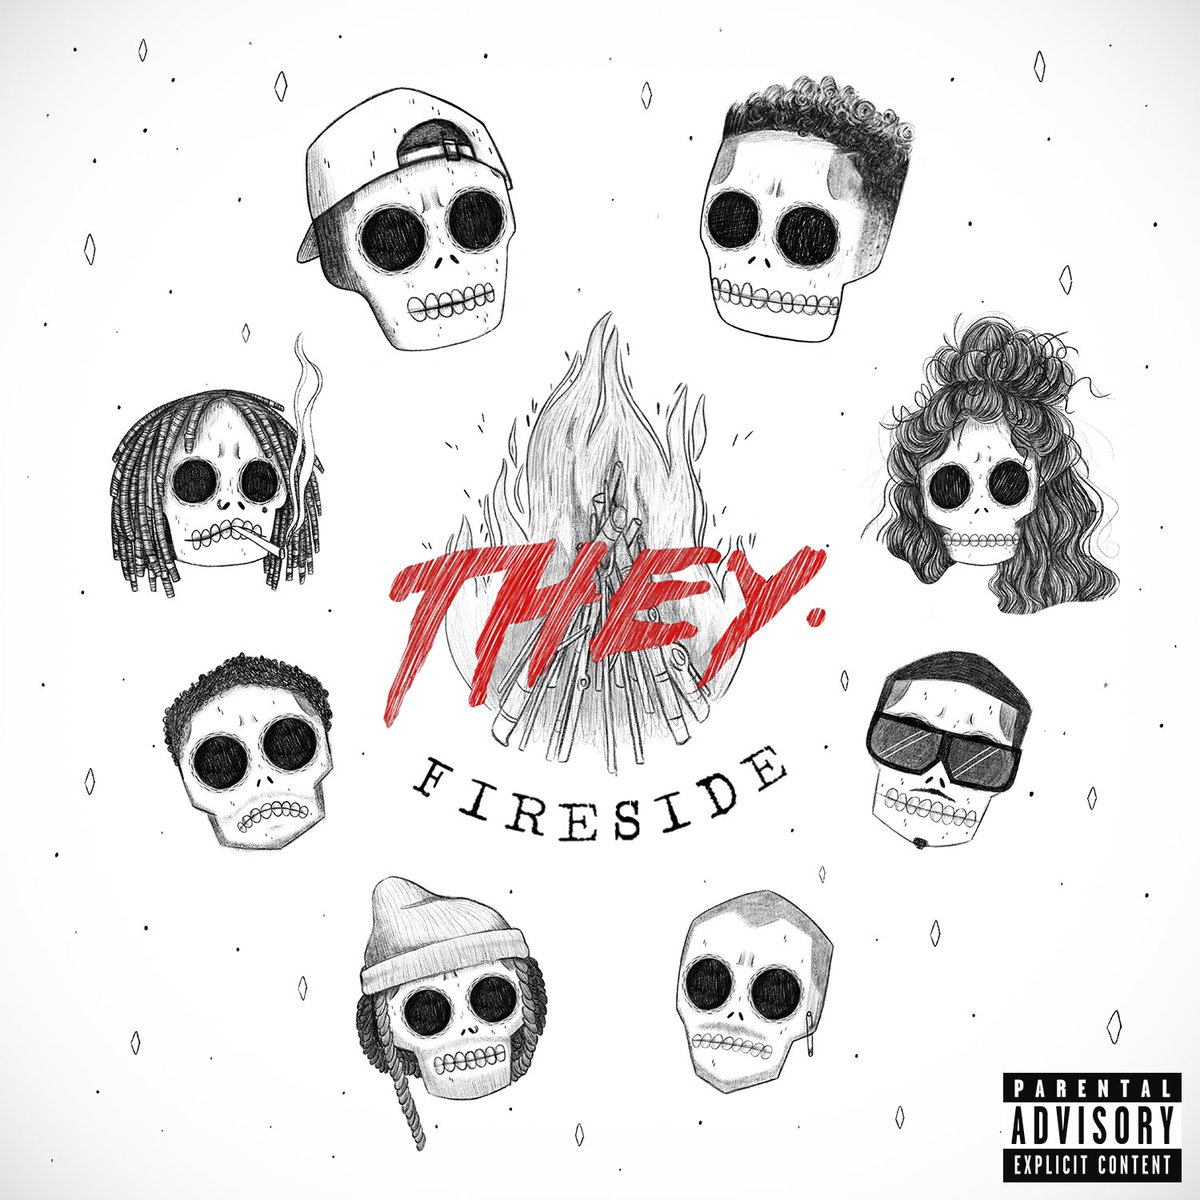 LA-based duo @unofficialTHEY blend elements of R&B, hip-hop and alt-rock on their ear-catching new 'Fireside' Spin the EP now, which features @tydollasign, @Jeremih, @wizkhalifa and more: https://t.co/0buWkxmpA9 https://t.co/os7u4Nu0WQ